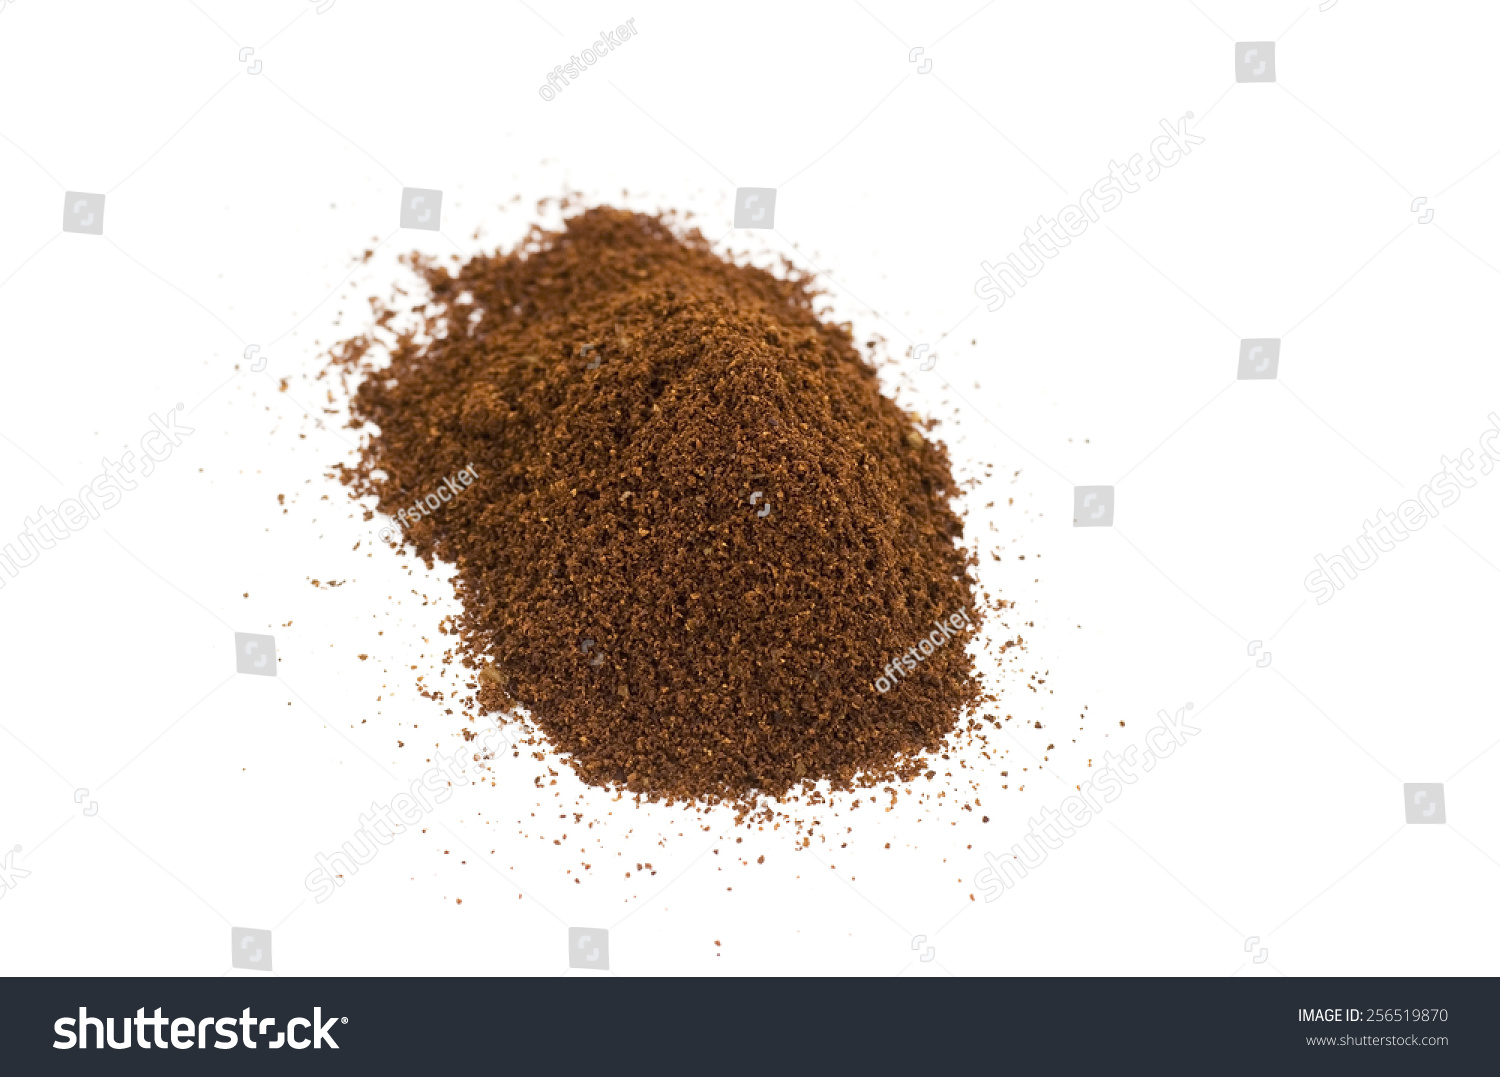 ground coffee stock photo - photo #14